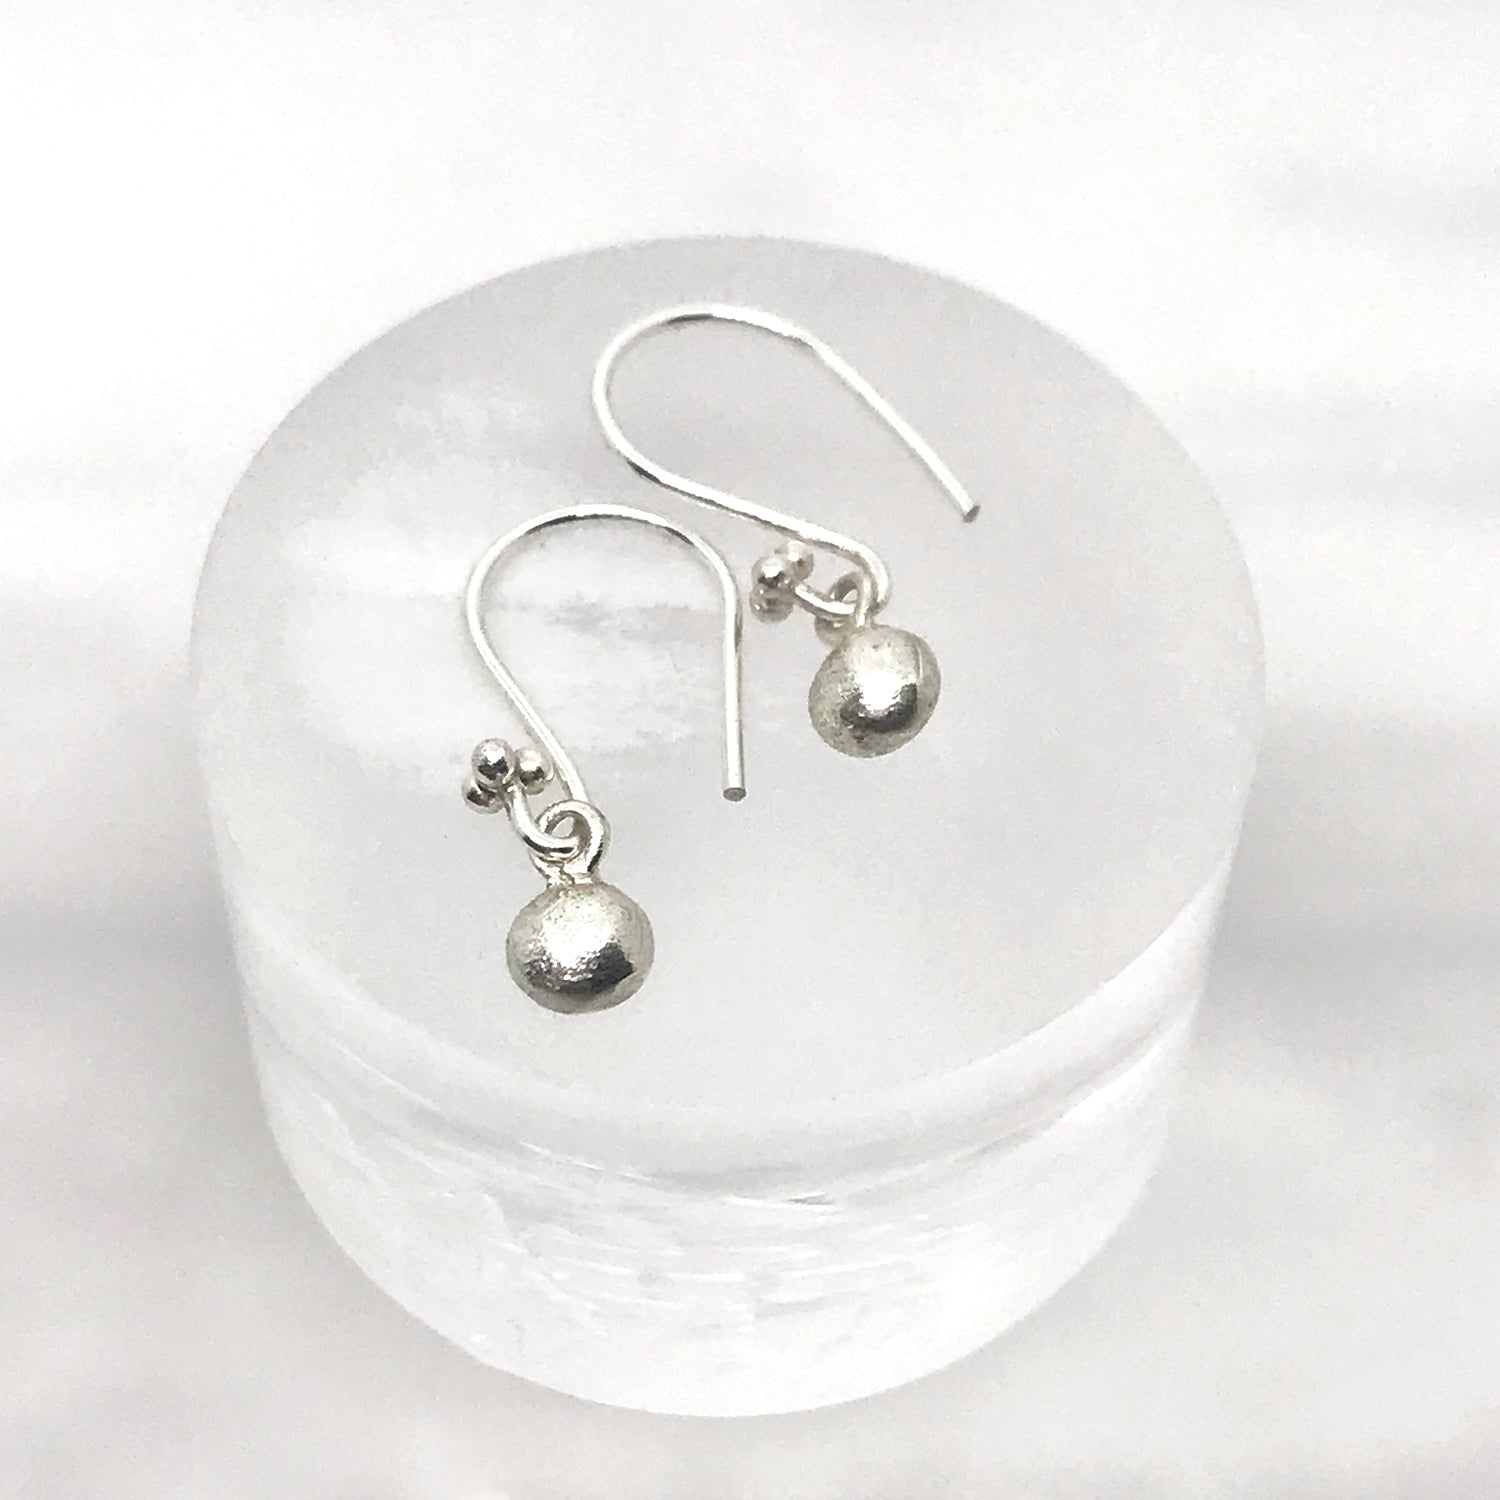 Dainty Silver Earrings Pebble Drops - kriket broadhurst minimalist jewellery